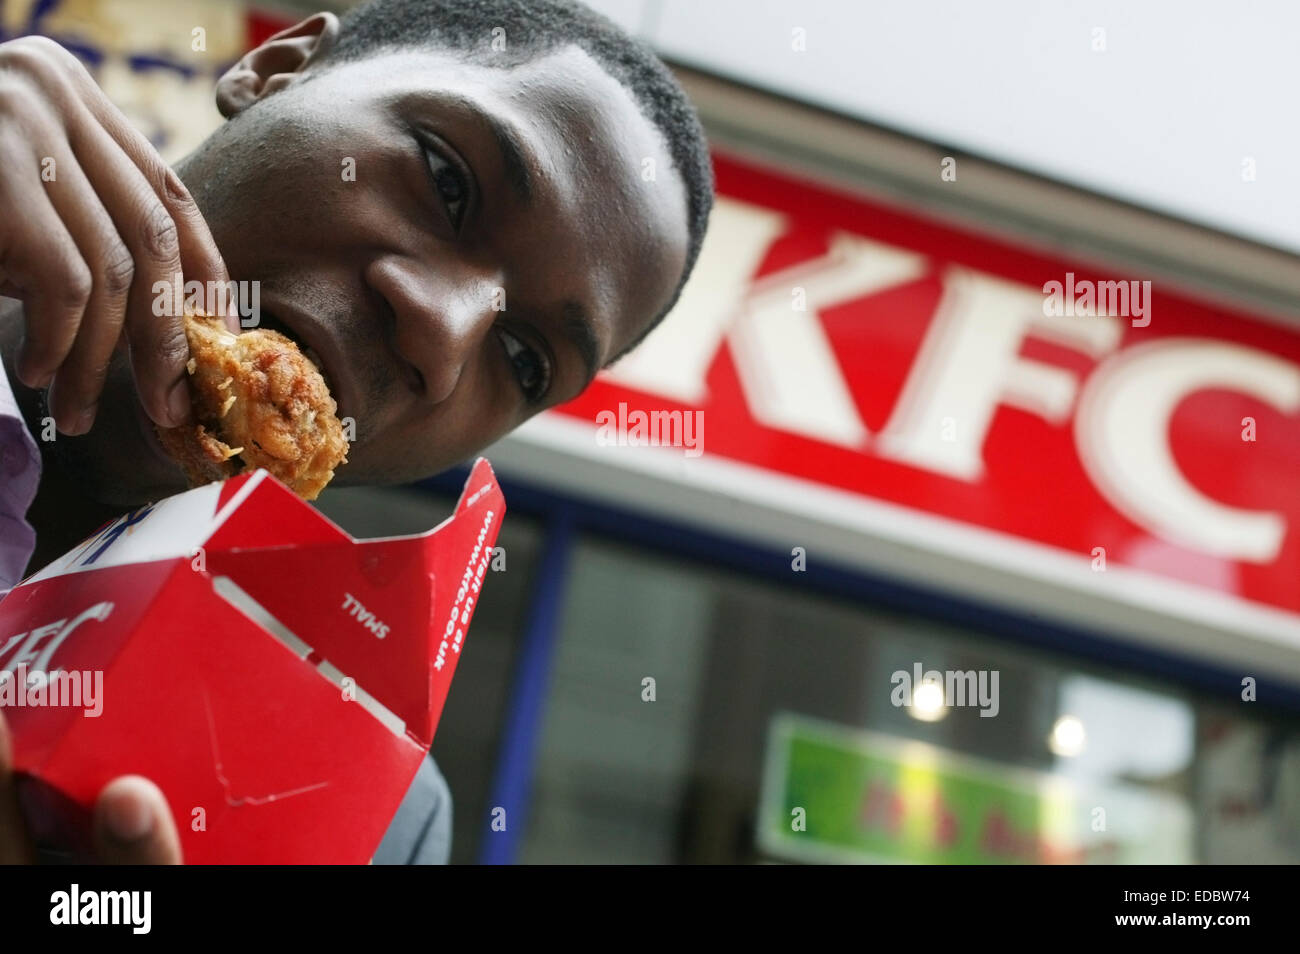 Illustrative image of KFC; part of the YUM! Brands group. - Stock Image